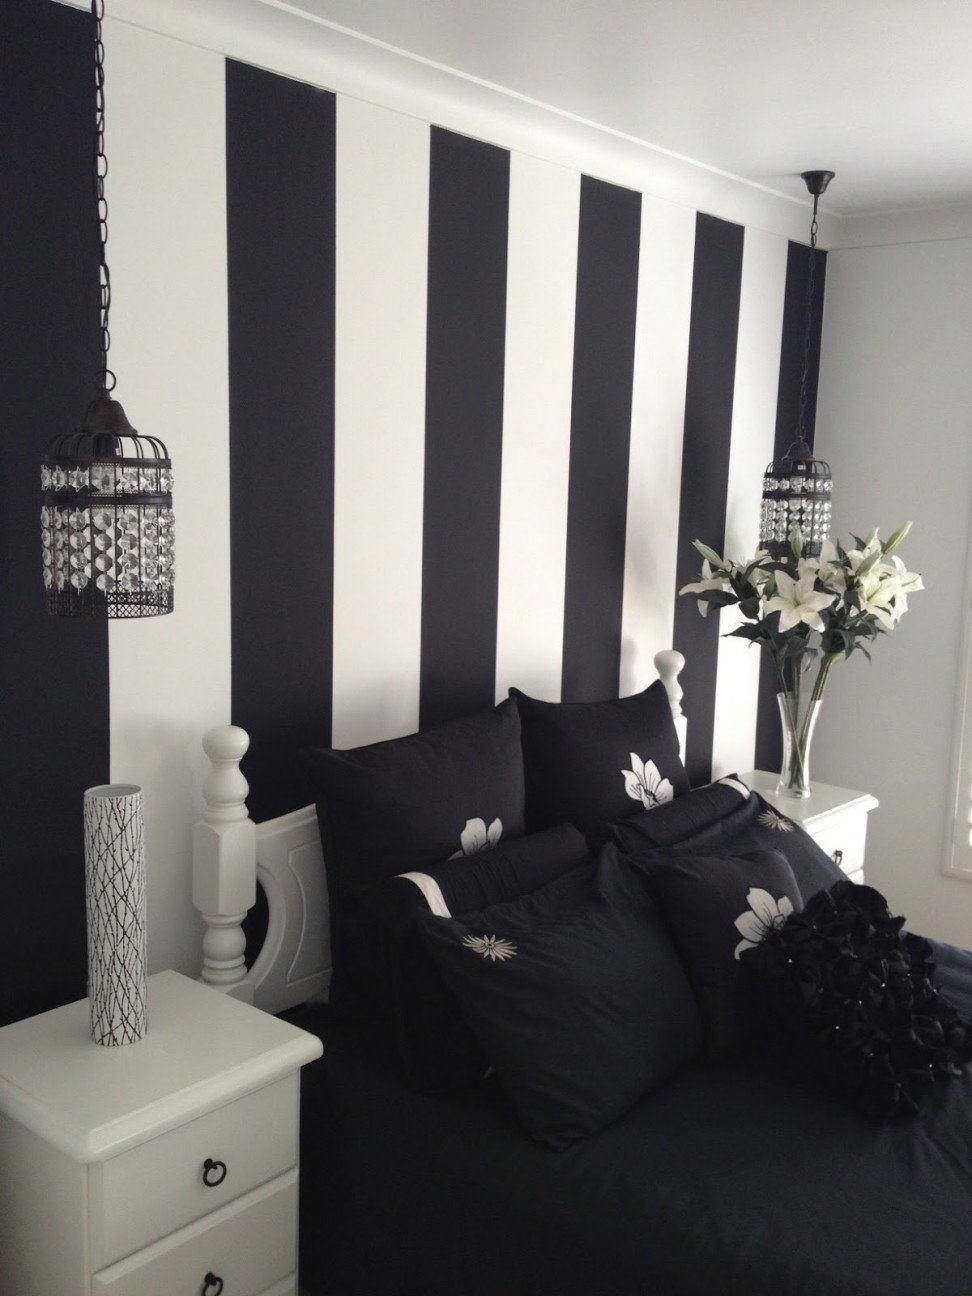 10 Ideal Black And White Painting Ideas modern elegant design of the balck and white painting that has white 2020